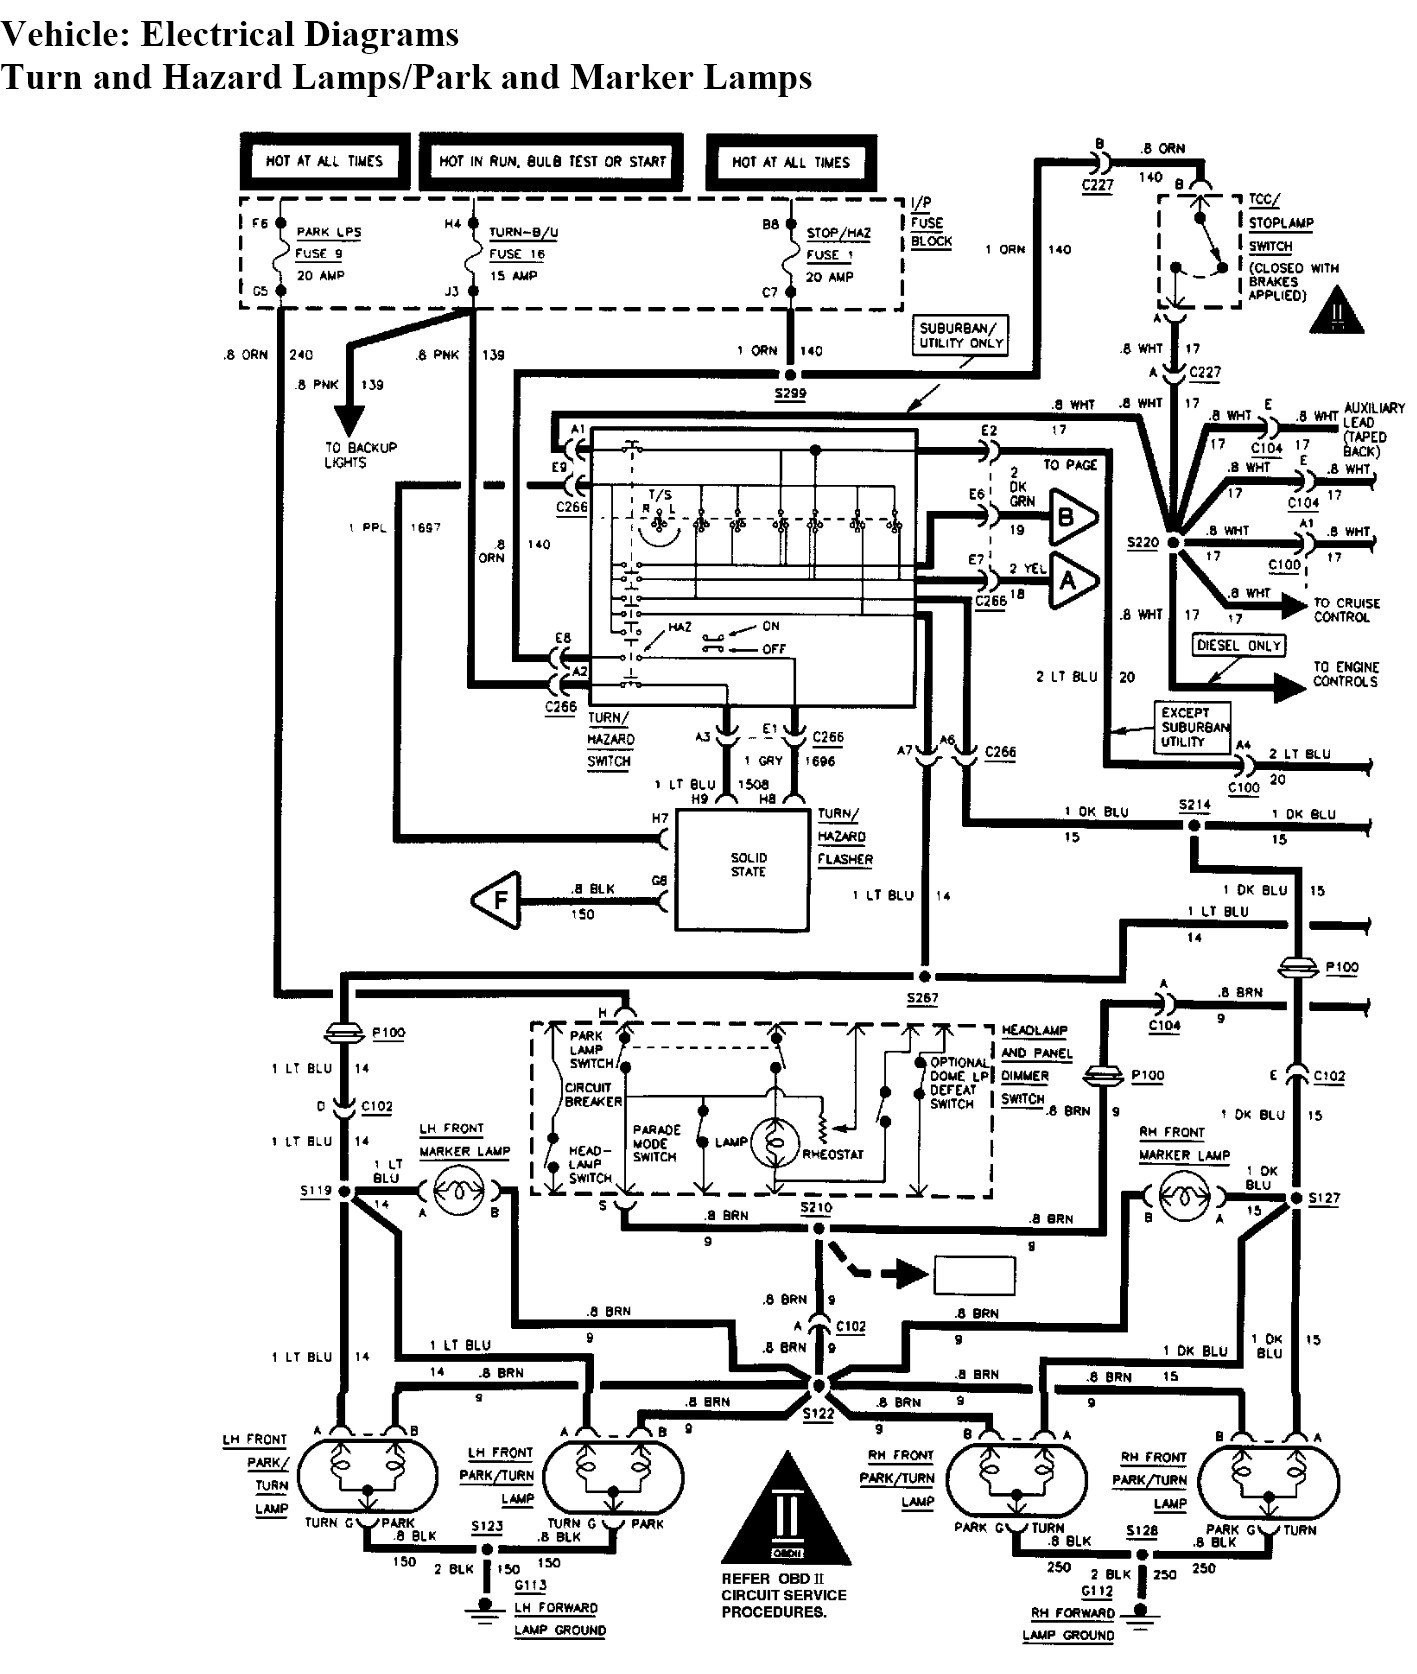 gm brake switch wiring diagram online circuit wiring diagram u2022 rh electrobuddha co uk